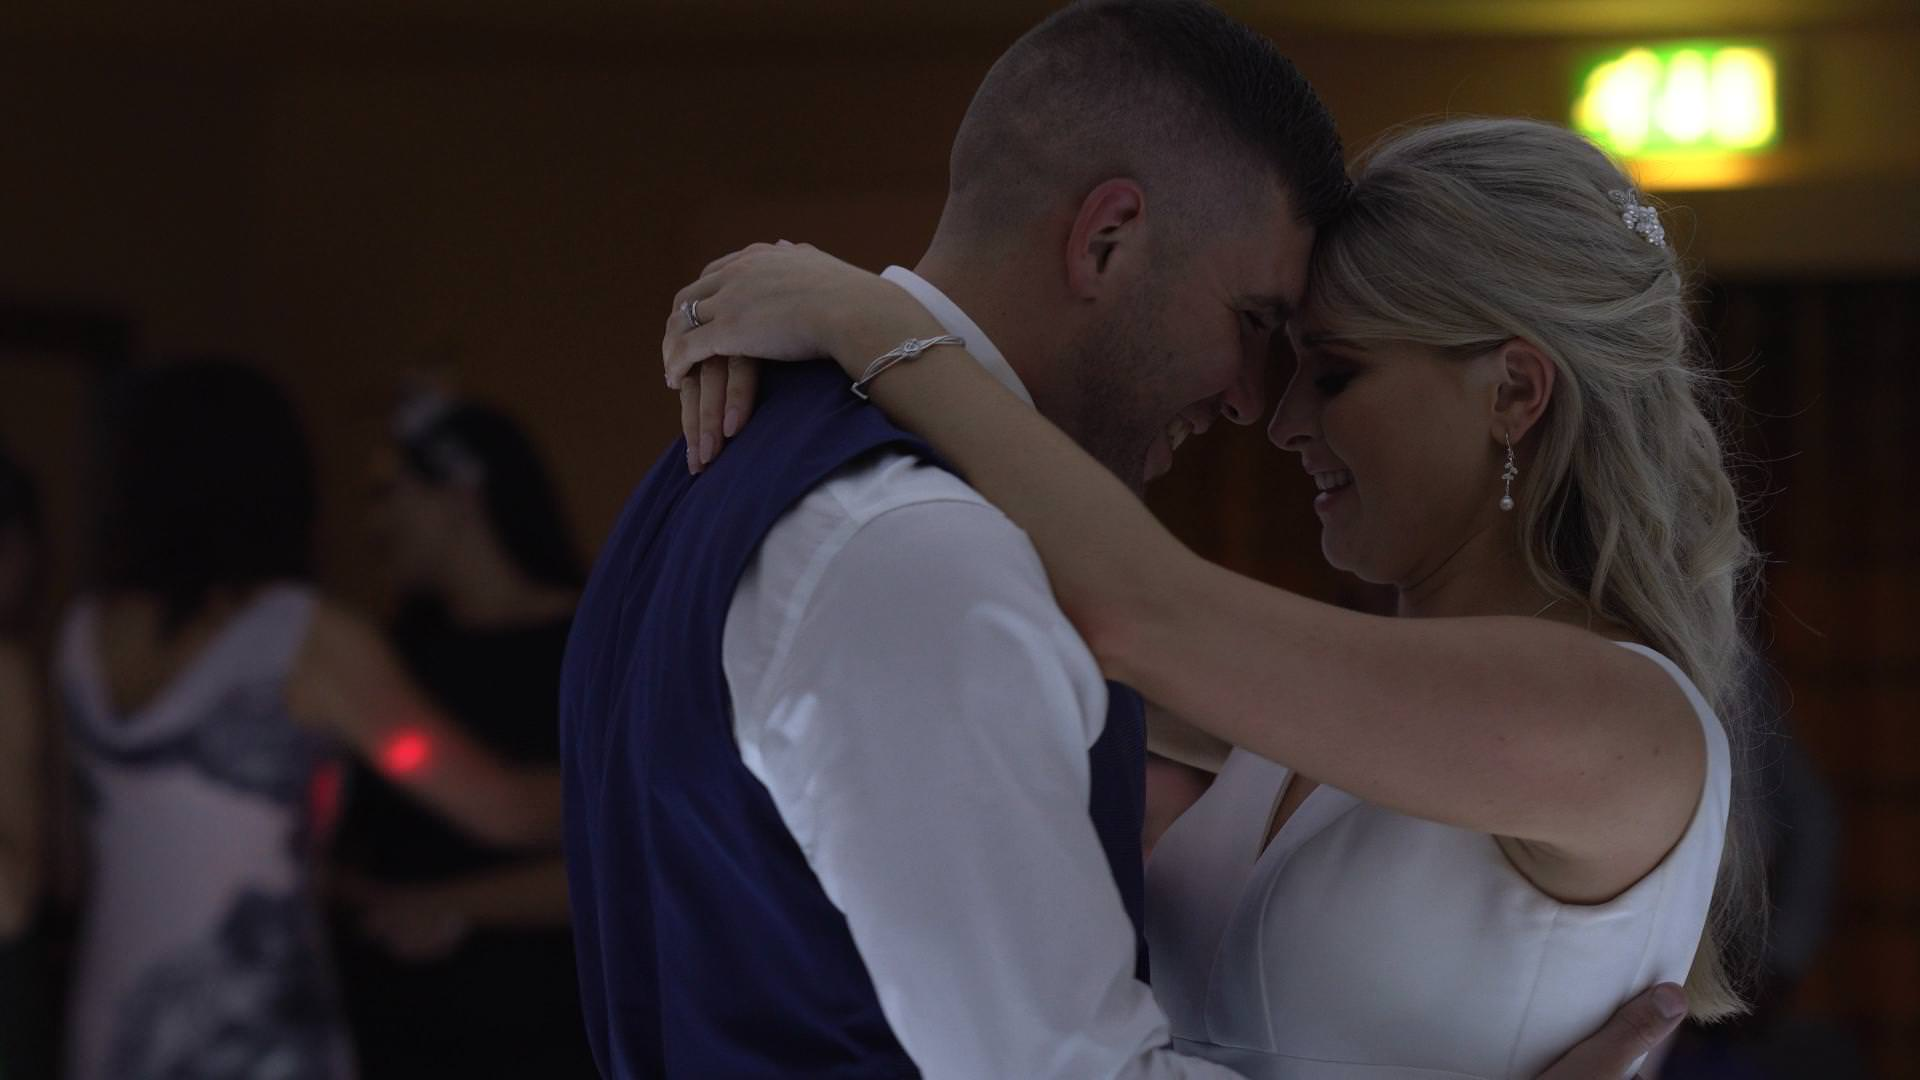 a wedding video still of a bride and groom touching heads during their first dance